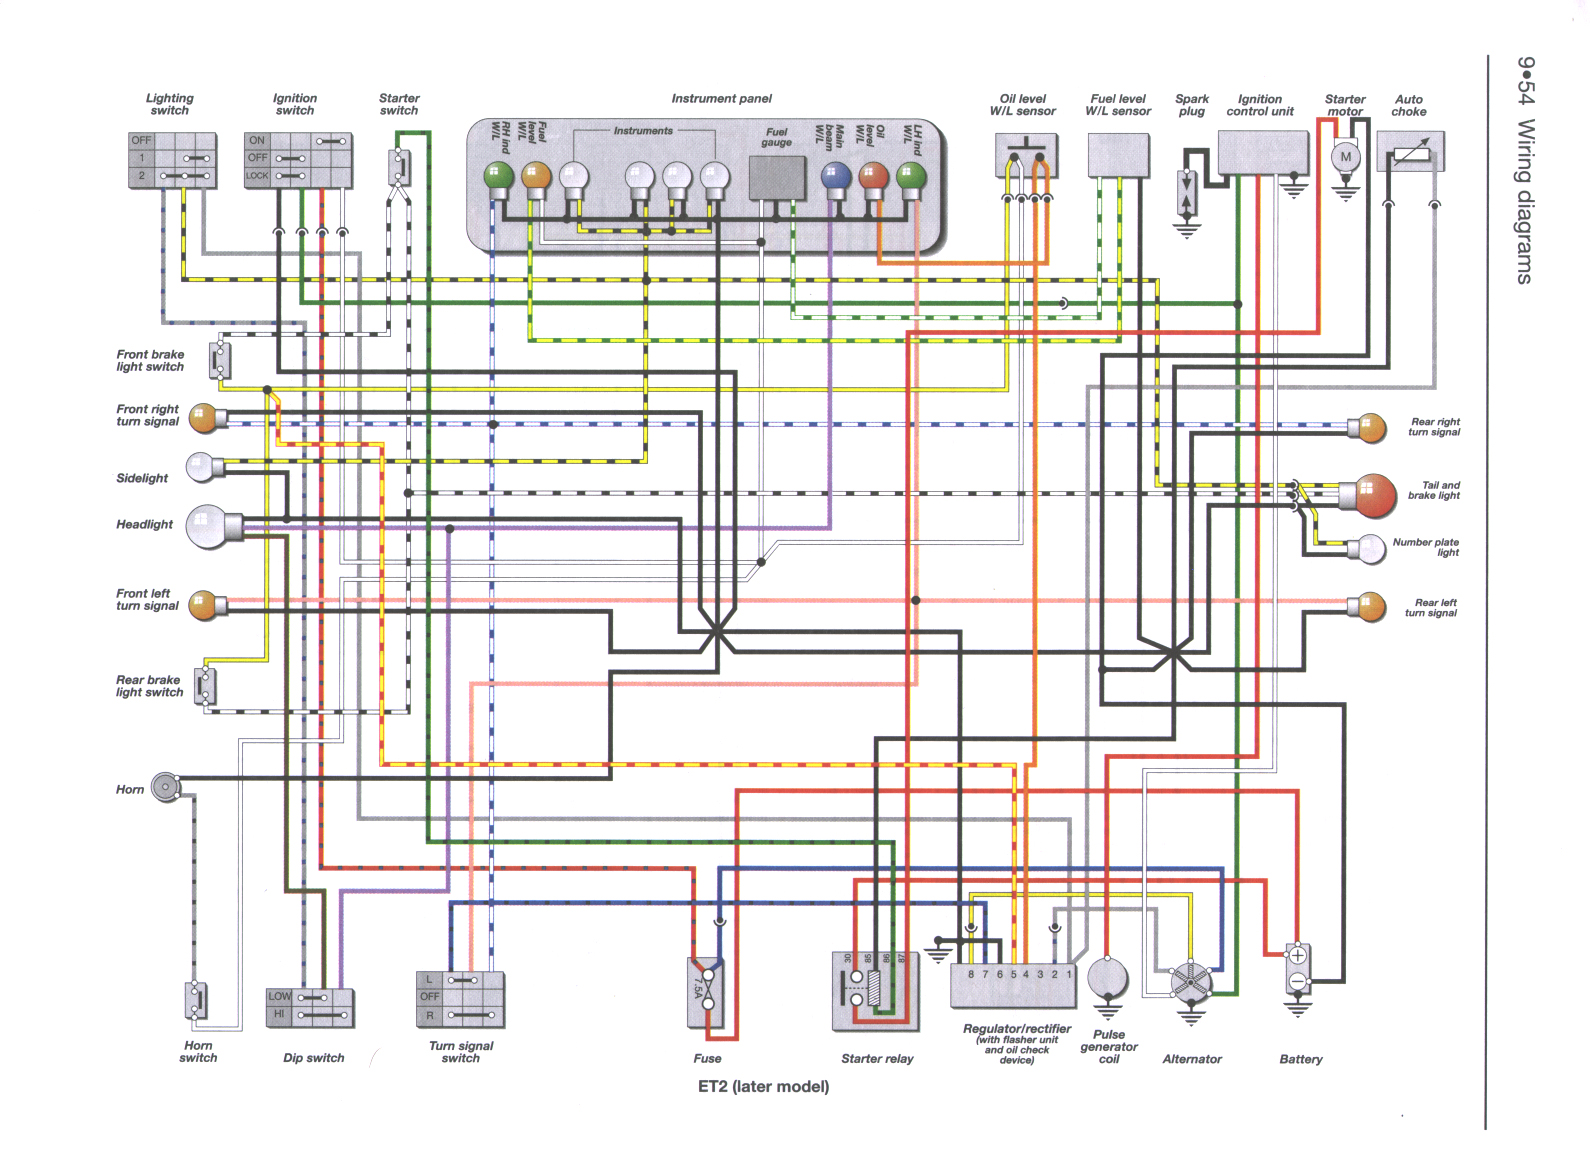 hight resolution of wiring diagram of honda tmx 155